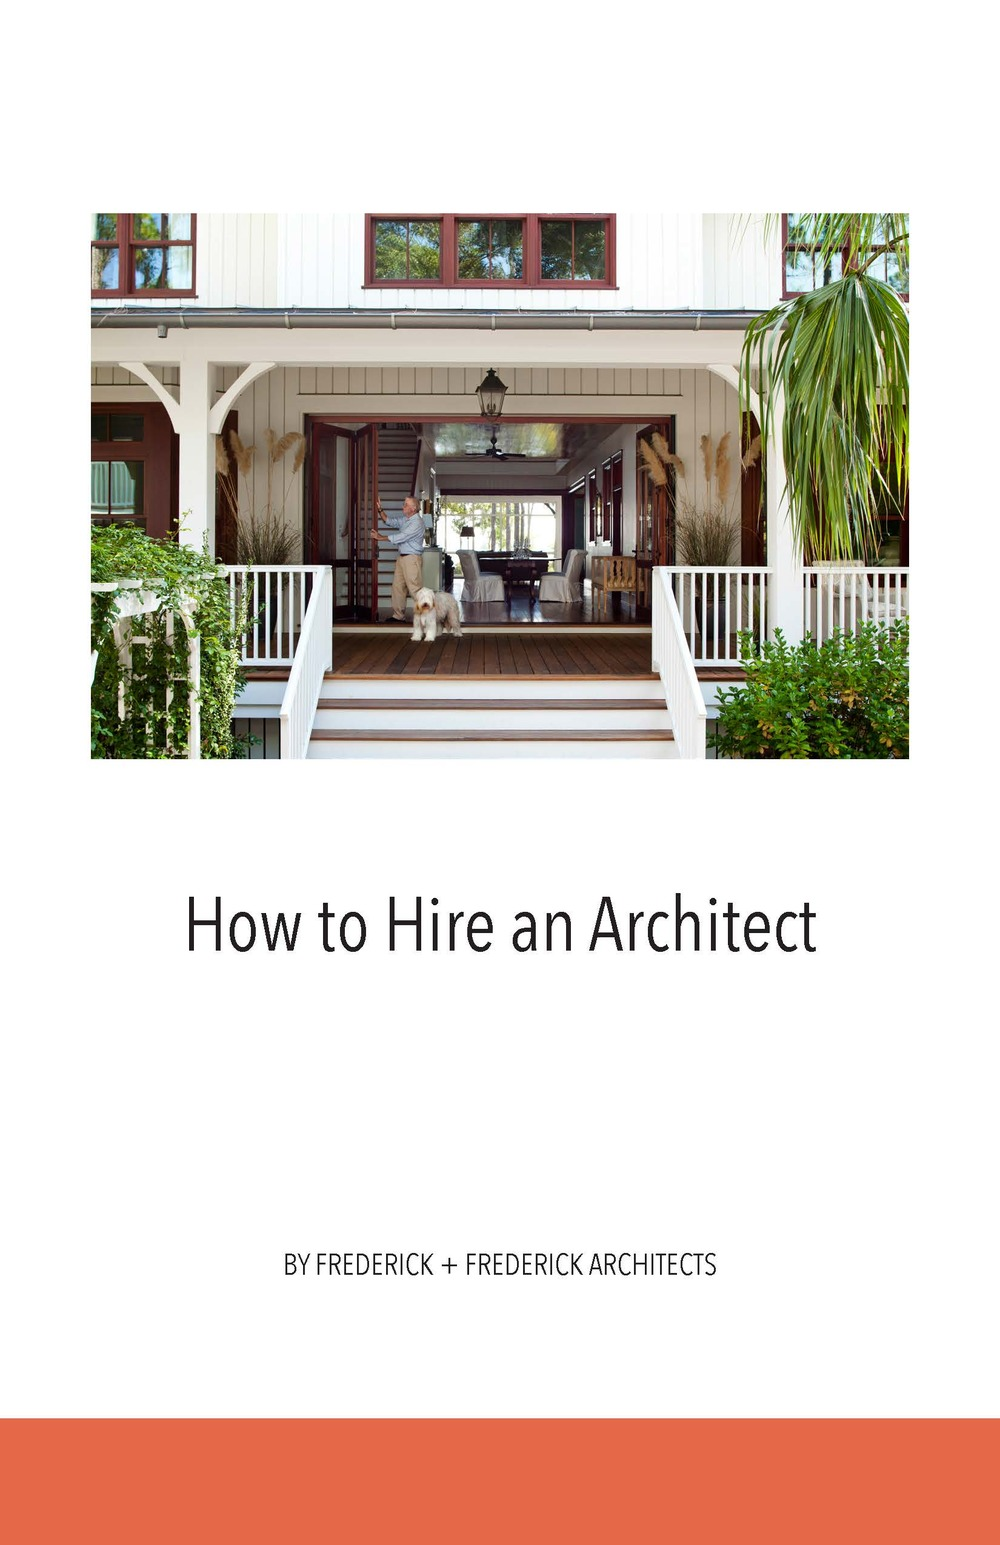 Register here to download our free copy of How to Hire an Architect